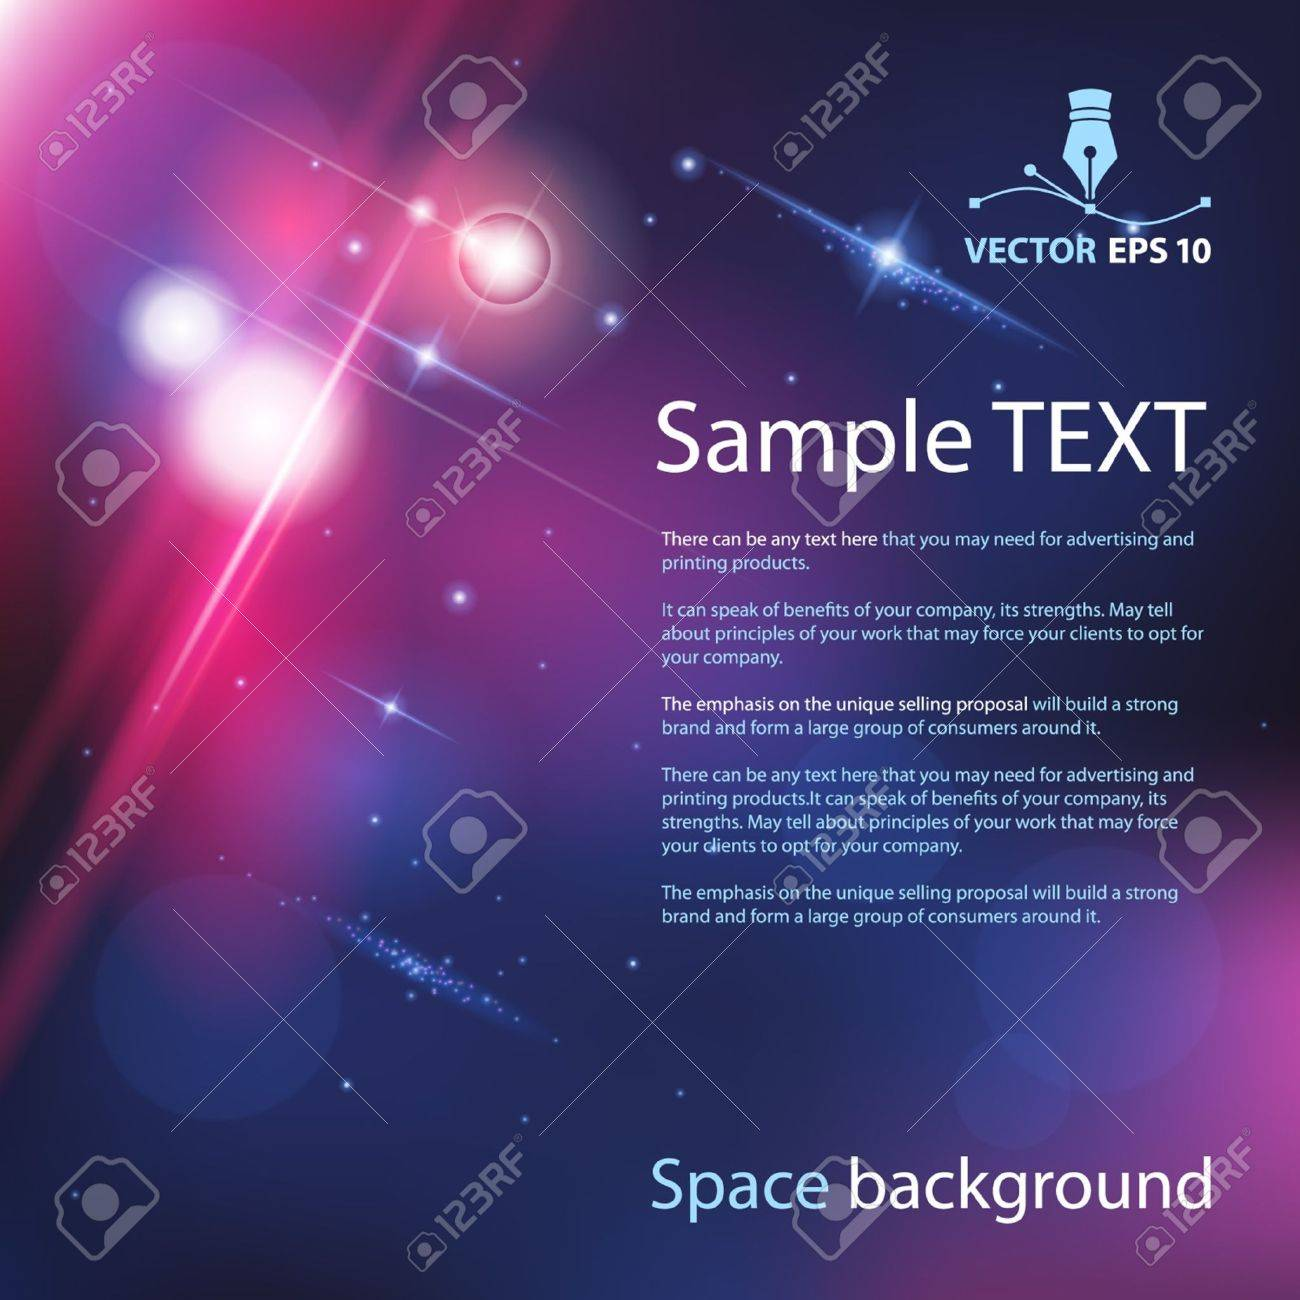 Vector space background for sample text Stock Vector - 13254252